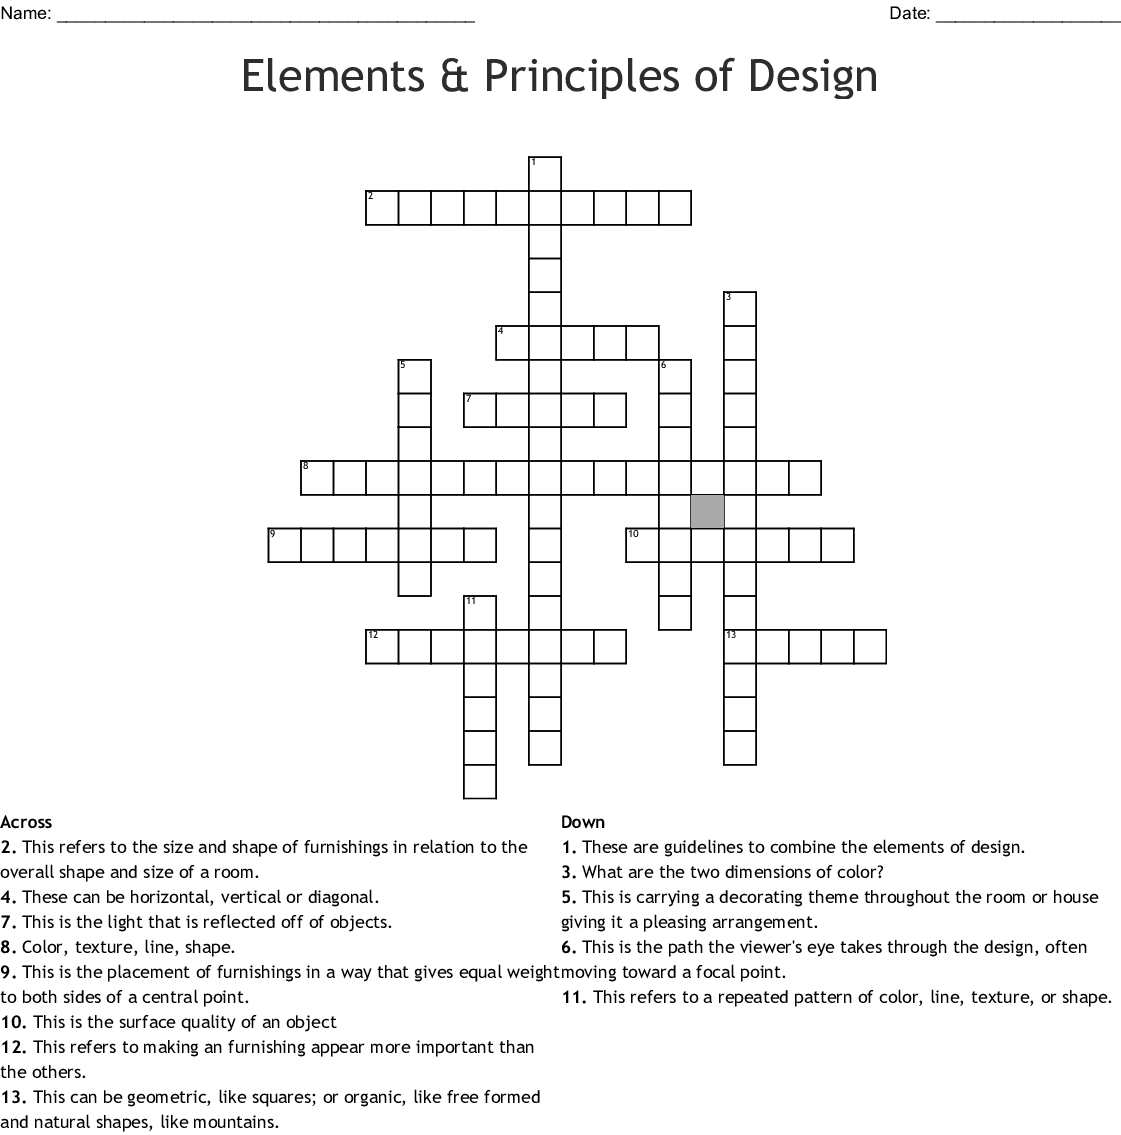 Elements Amp Principles Of Design Crossword